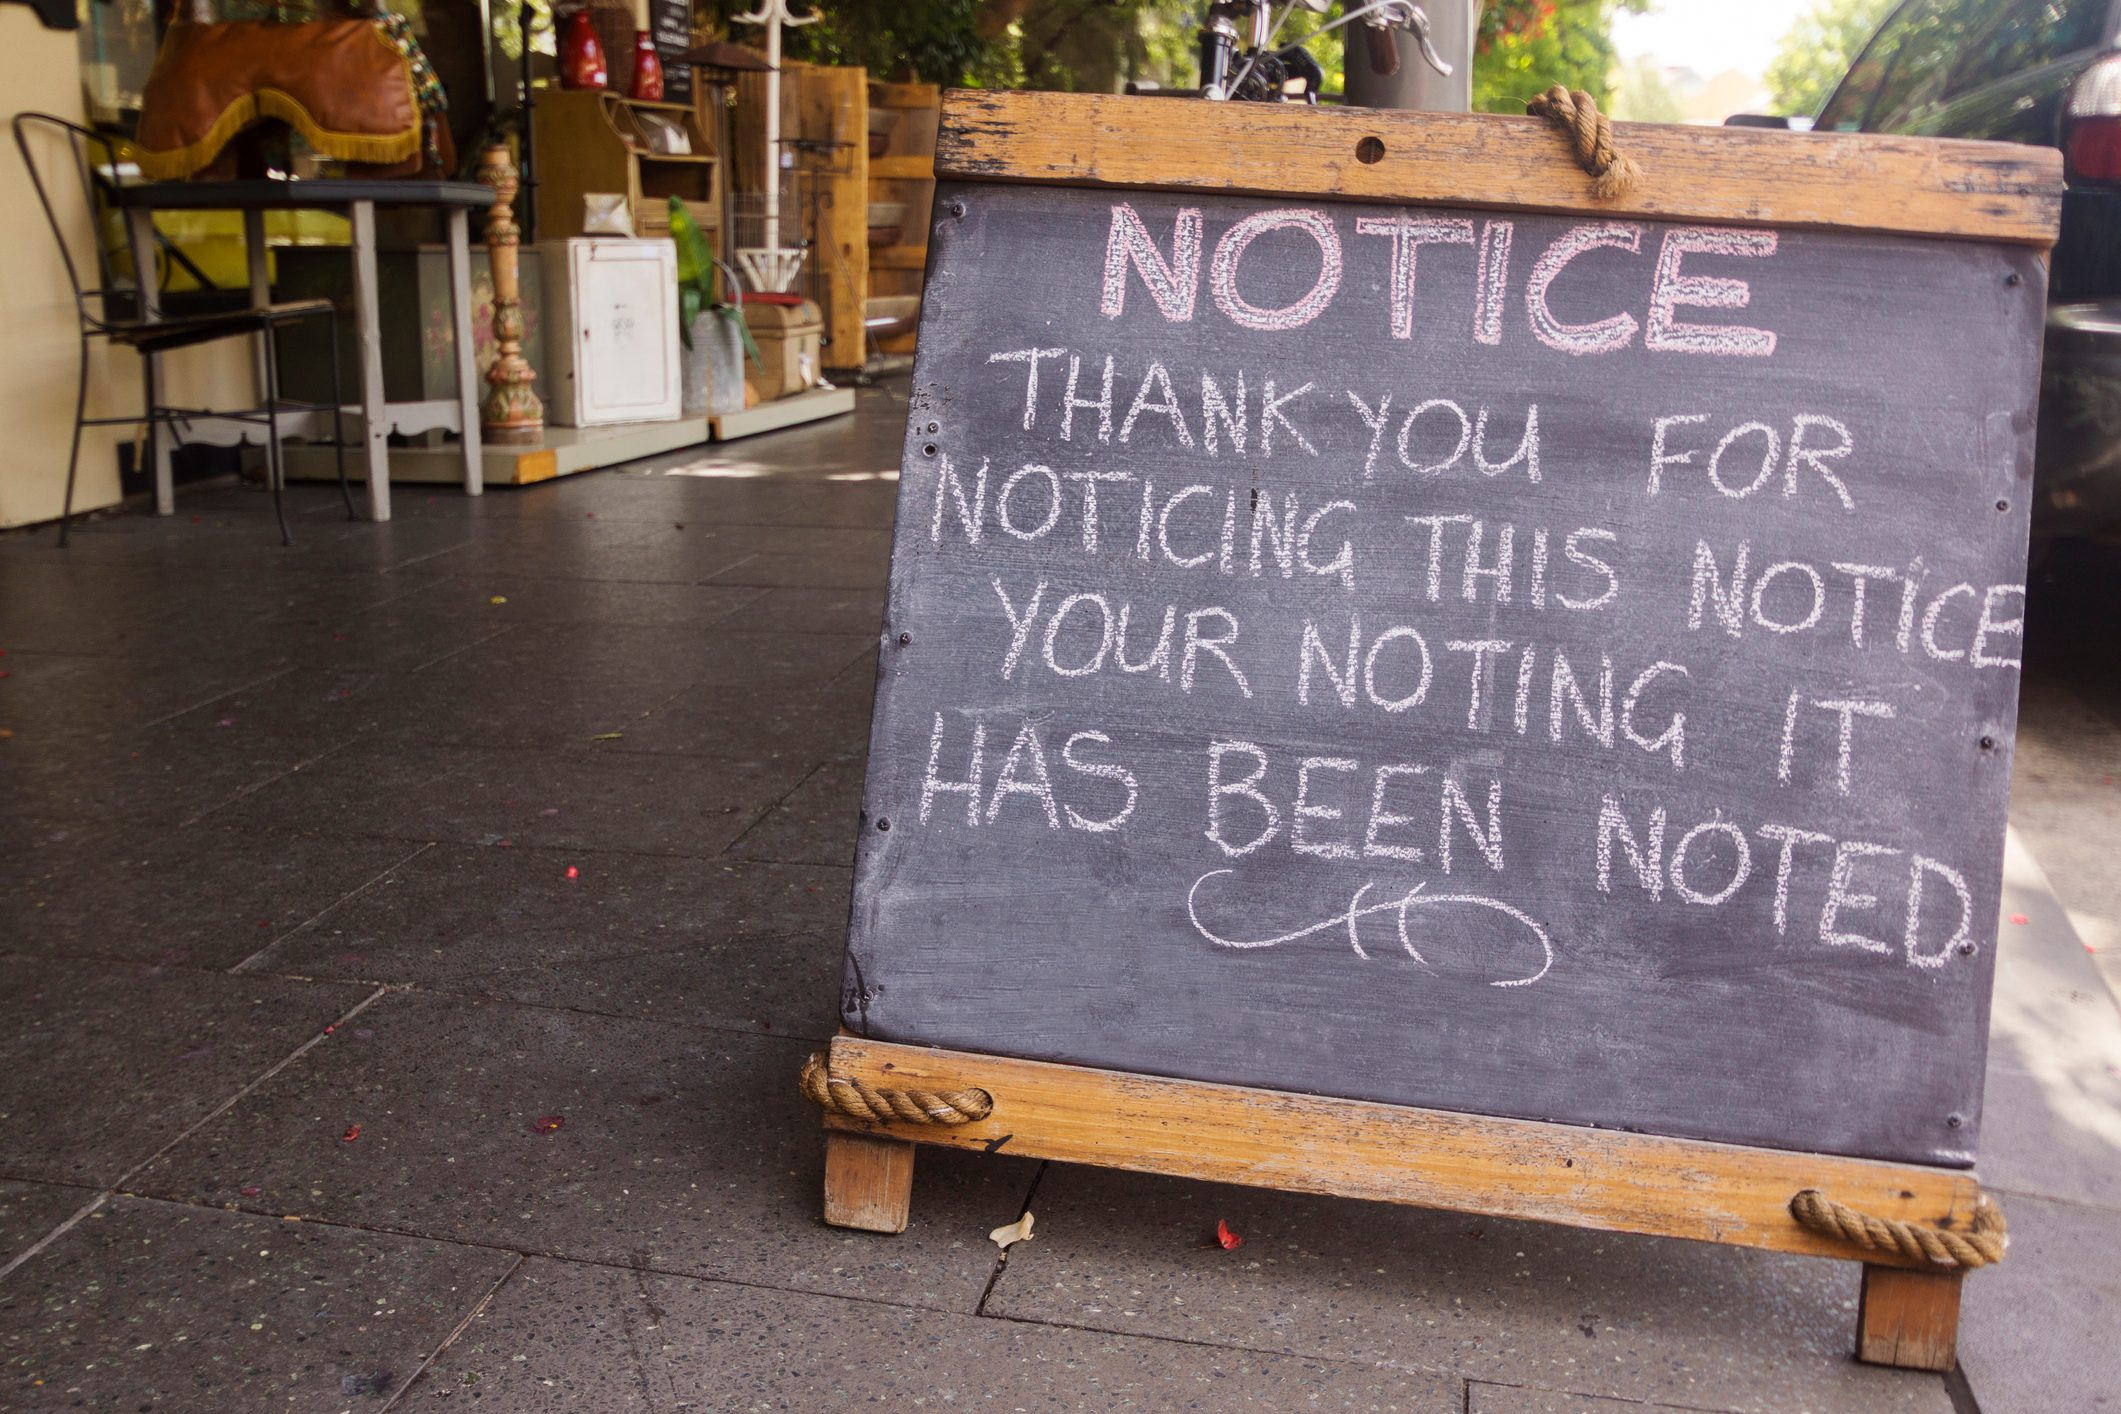 Notice: Thank you for noticing this notice.